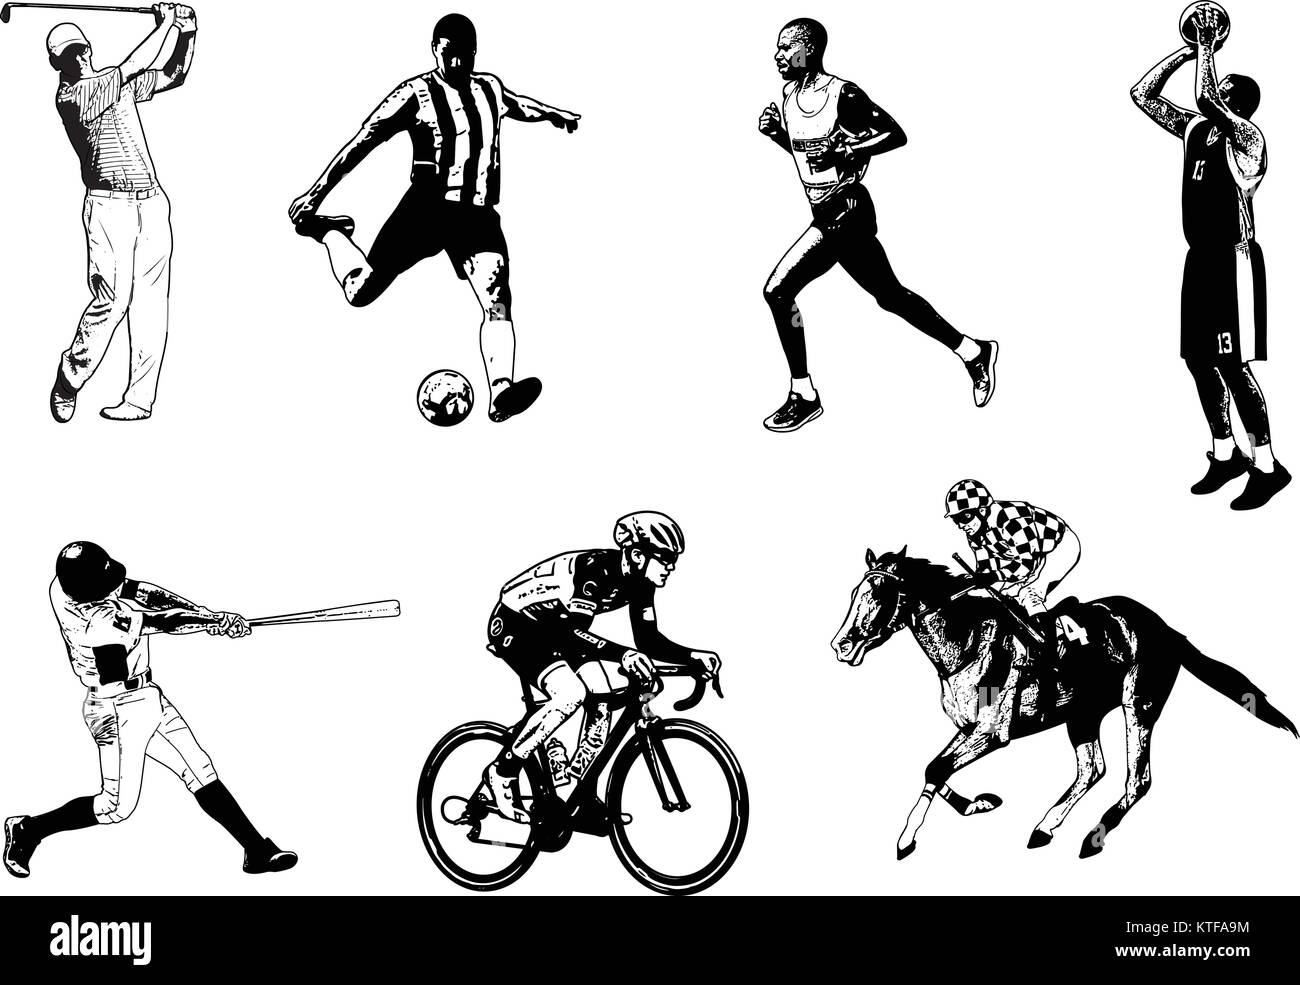 Various sports sketch illustration - vector - Stock Image